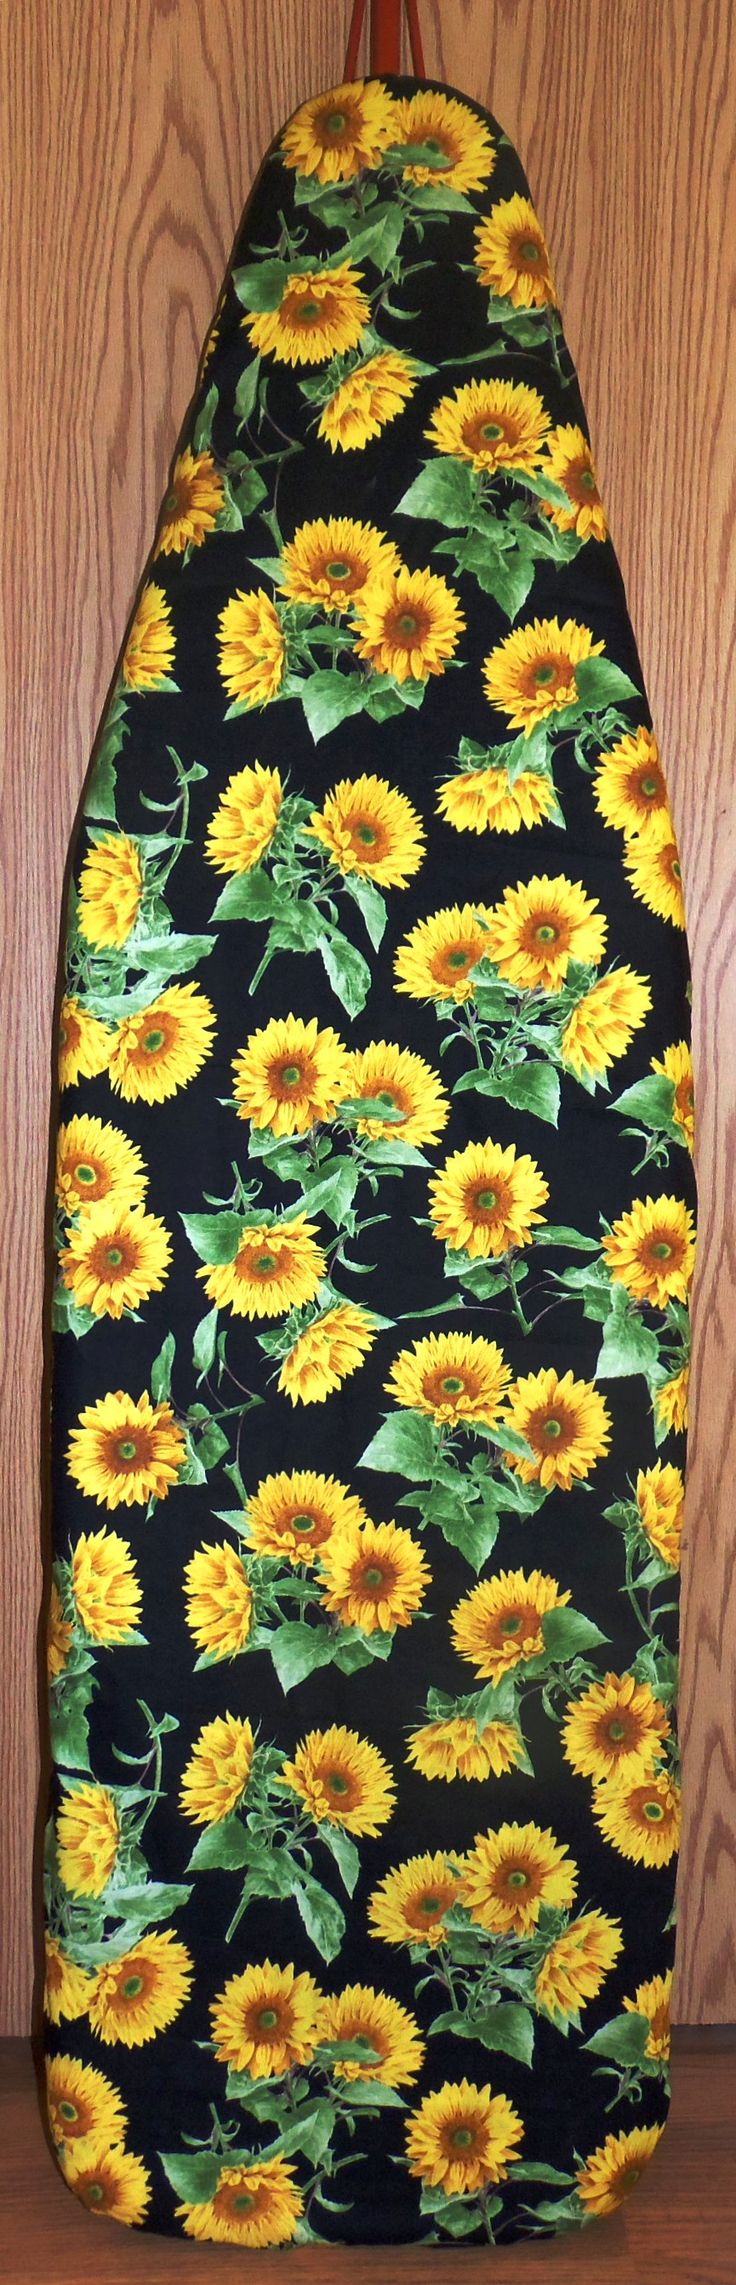 "Sunflowers - Farmhouse Ironing board cover Nice & Quick way to change the look of your Ironing Board. Great for displaying your antique Ironing Board. Standard board measures 54""x 15"" ~ Our covers measures - 59"" X 19.5"" Made of 100% cotton fabric, Adjustable drawstring for a good fit with 1"" Cord lock double hole, 3 little teeth in each hole to help grip your cord better, for easy on and off and quick adjusting string Machine wash cold - tumble dry low. Handmade in the USA"